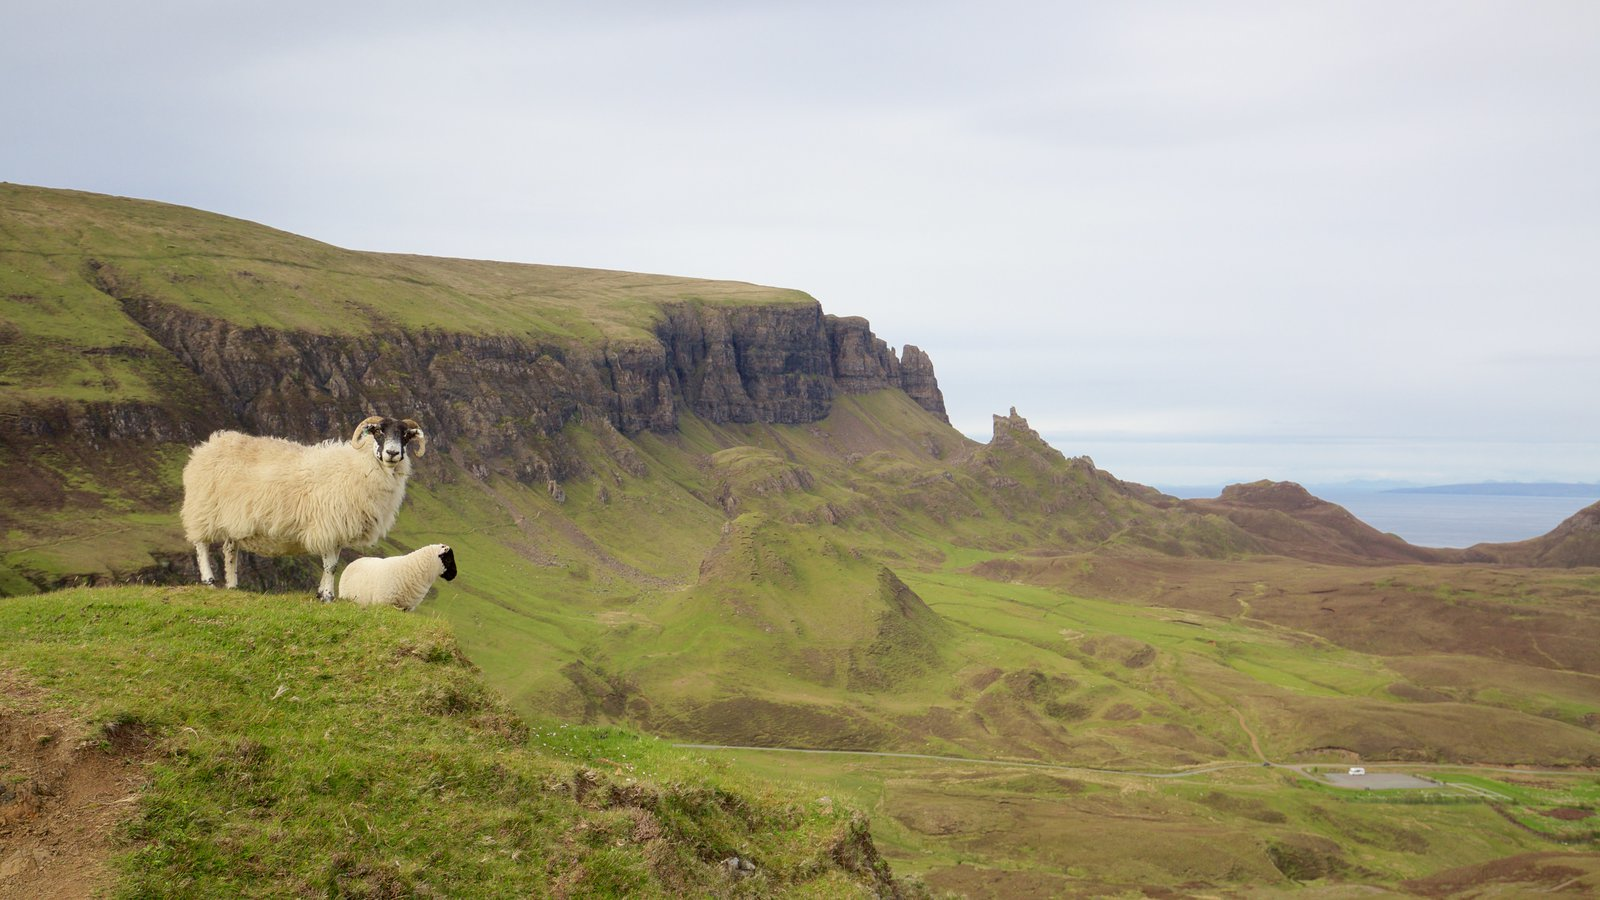 Quiraing which includes mountains, land animals and tranquil scenes